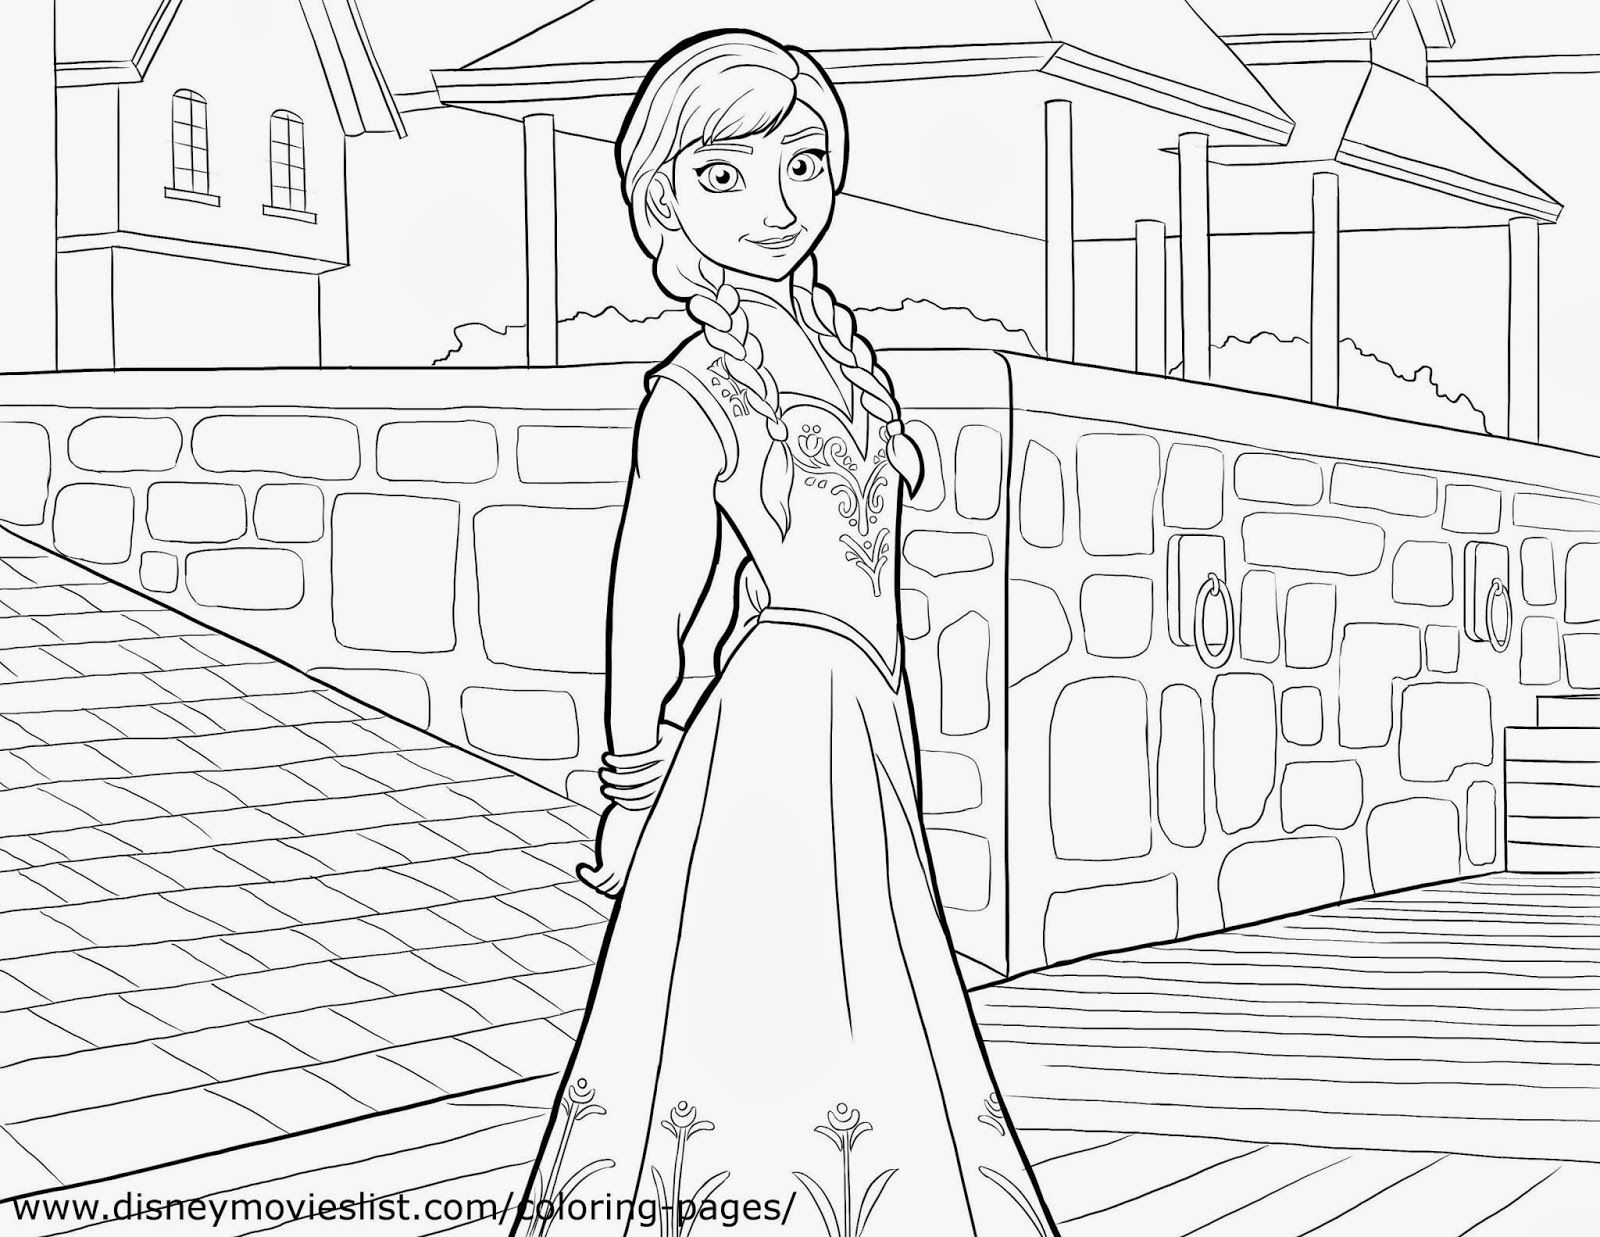 Frozen: Ana Free Coloring Pages. | Recursos | Pinterest | Free, Free ...